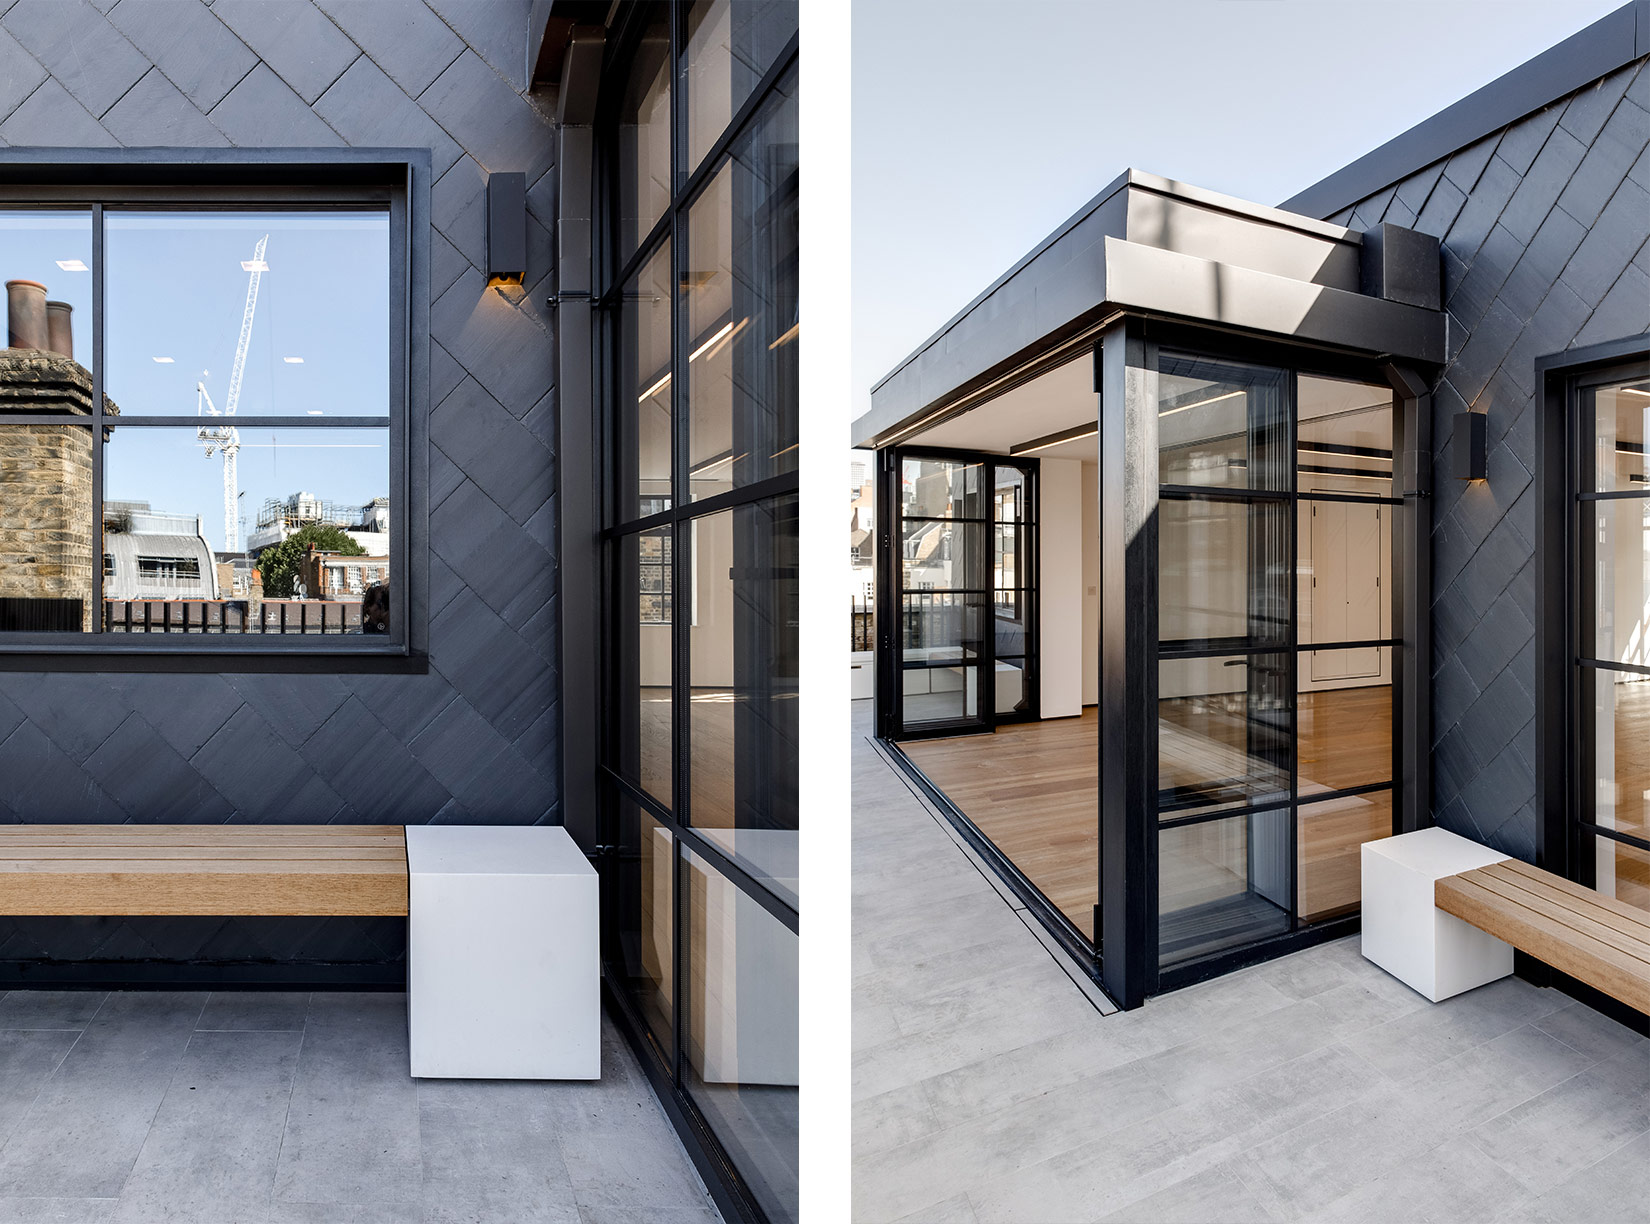 31 Bruton Place, London, Roof terrace